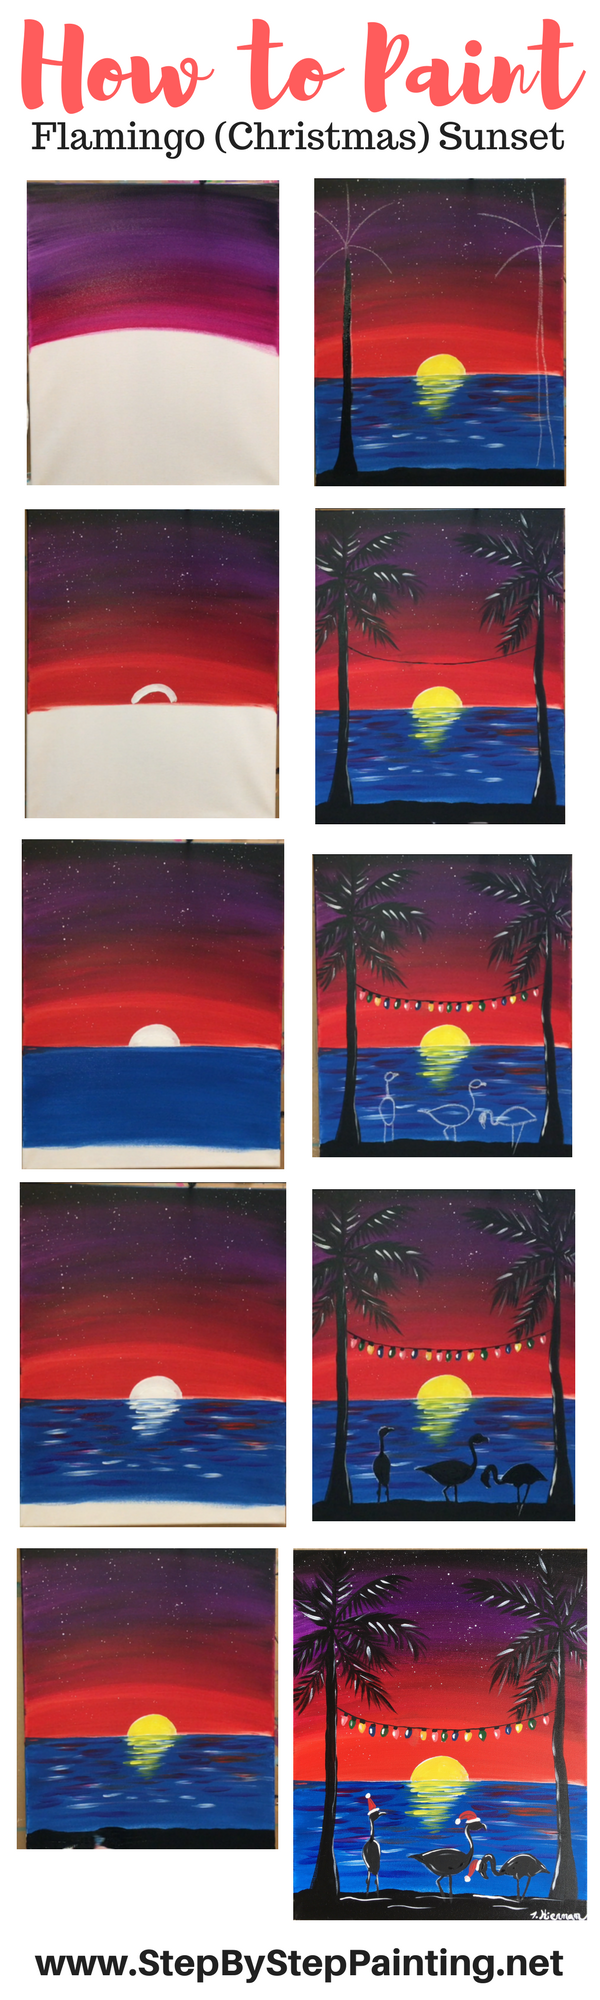 How To Paint A Flamingo Christmas Sunset - Step By Step ...